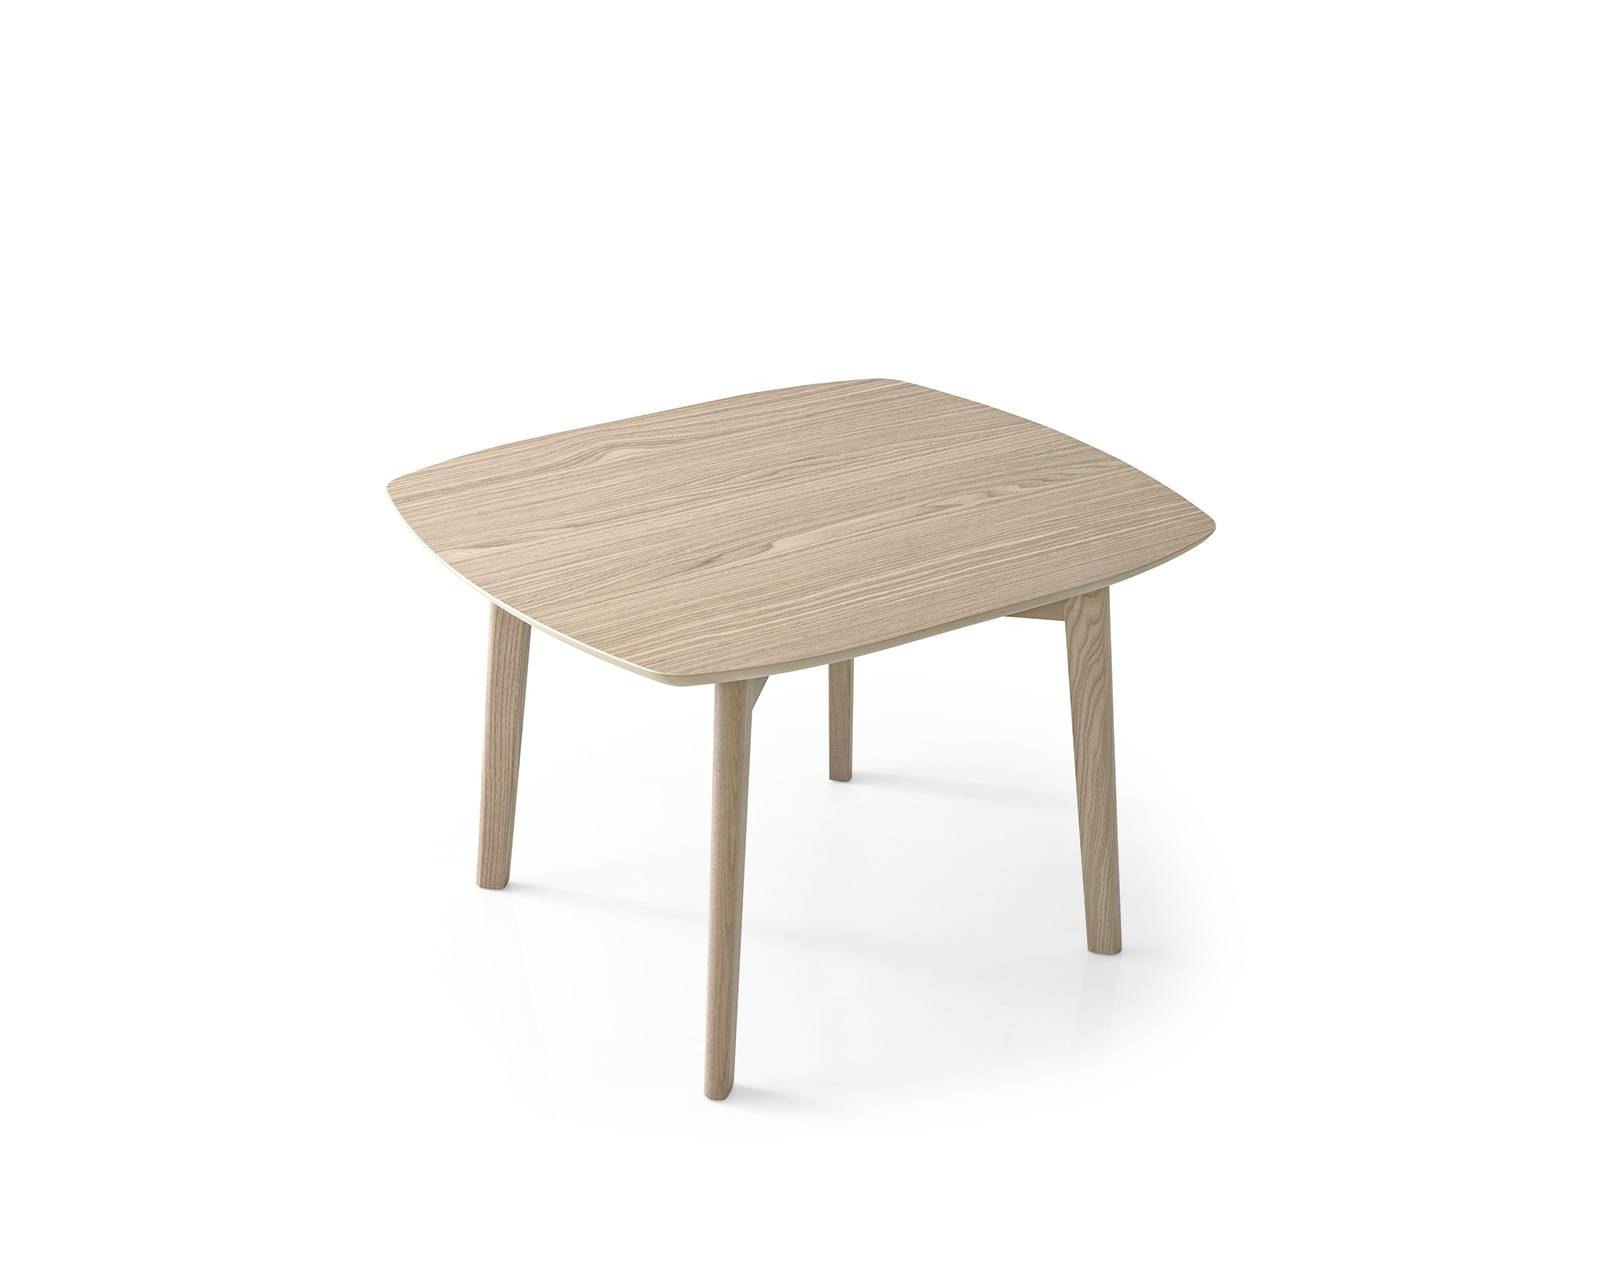 Match Small Wooden Coffee Table - Calligaris Cs/5084-C pertaining to C Coffee Tables (Image 18 of 30)